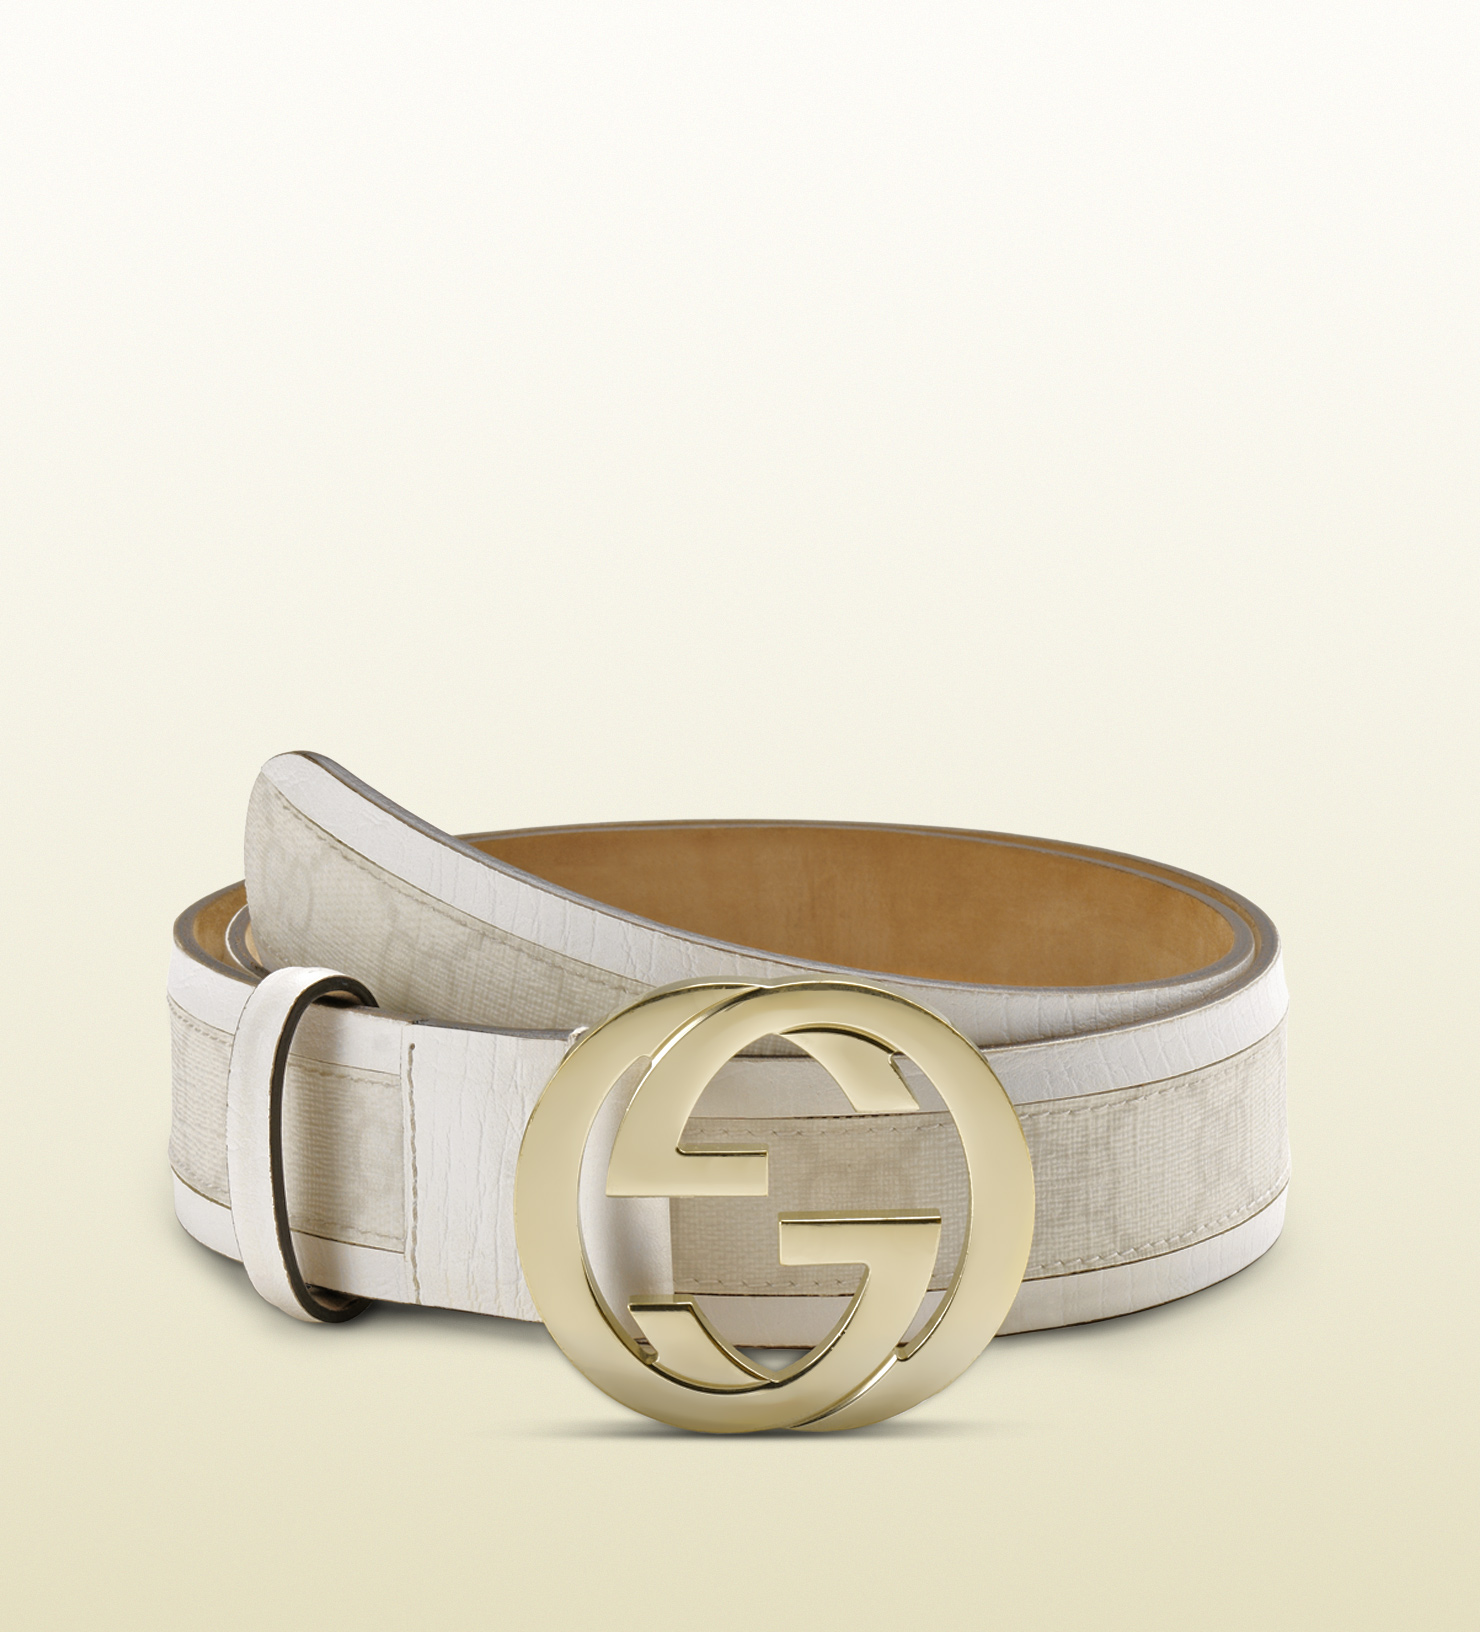 Gucci Gg Plus Belt With Interlocking G Buckle in White | Lyst